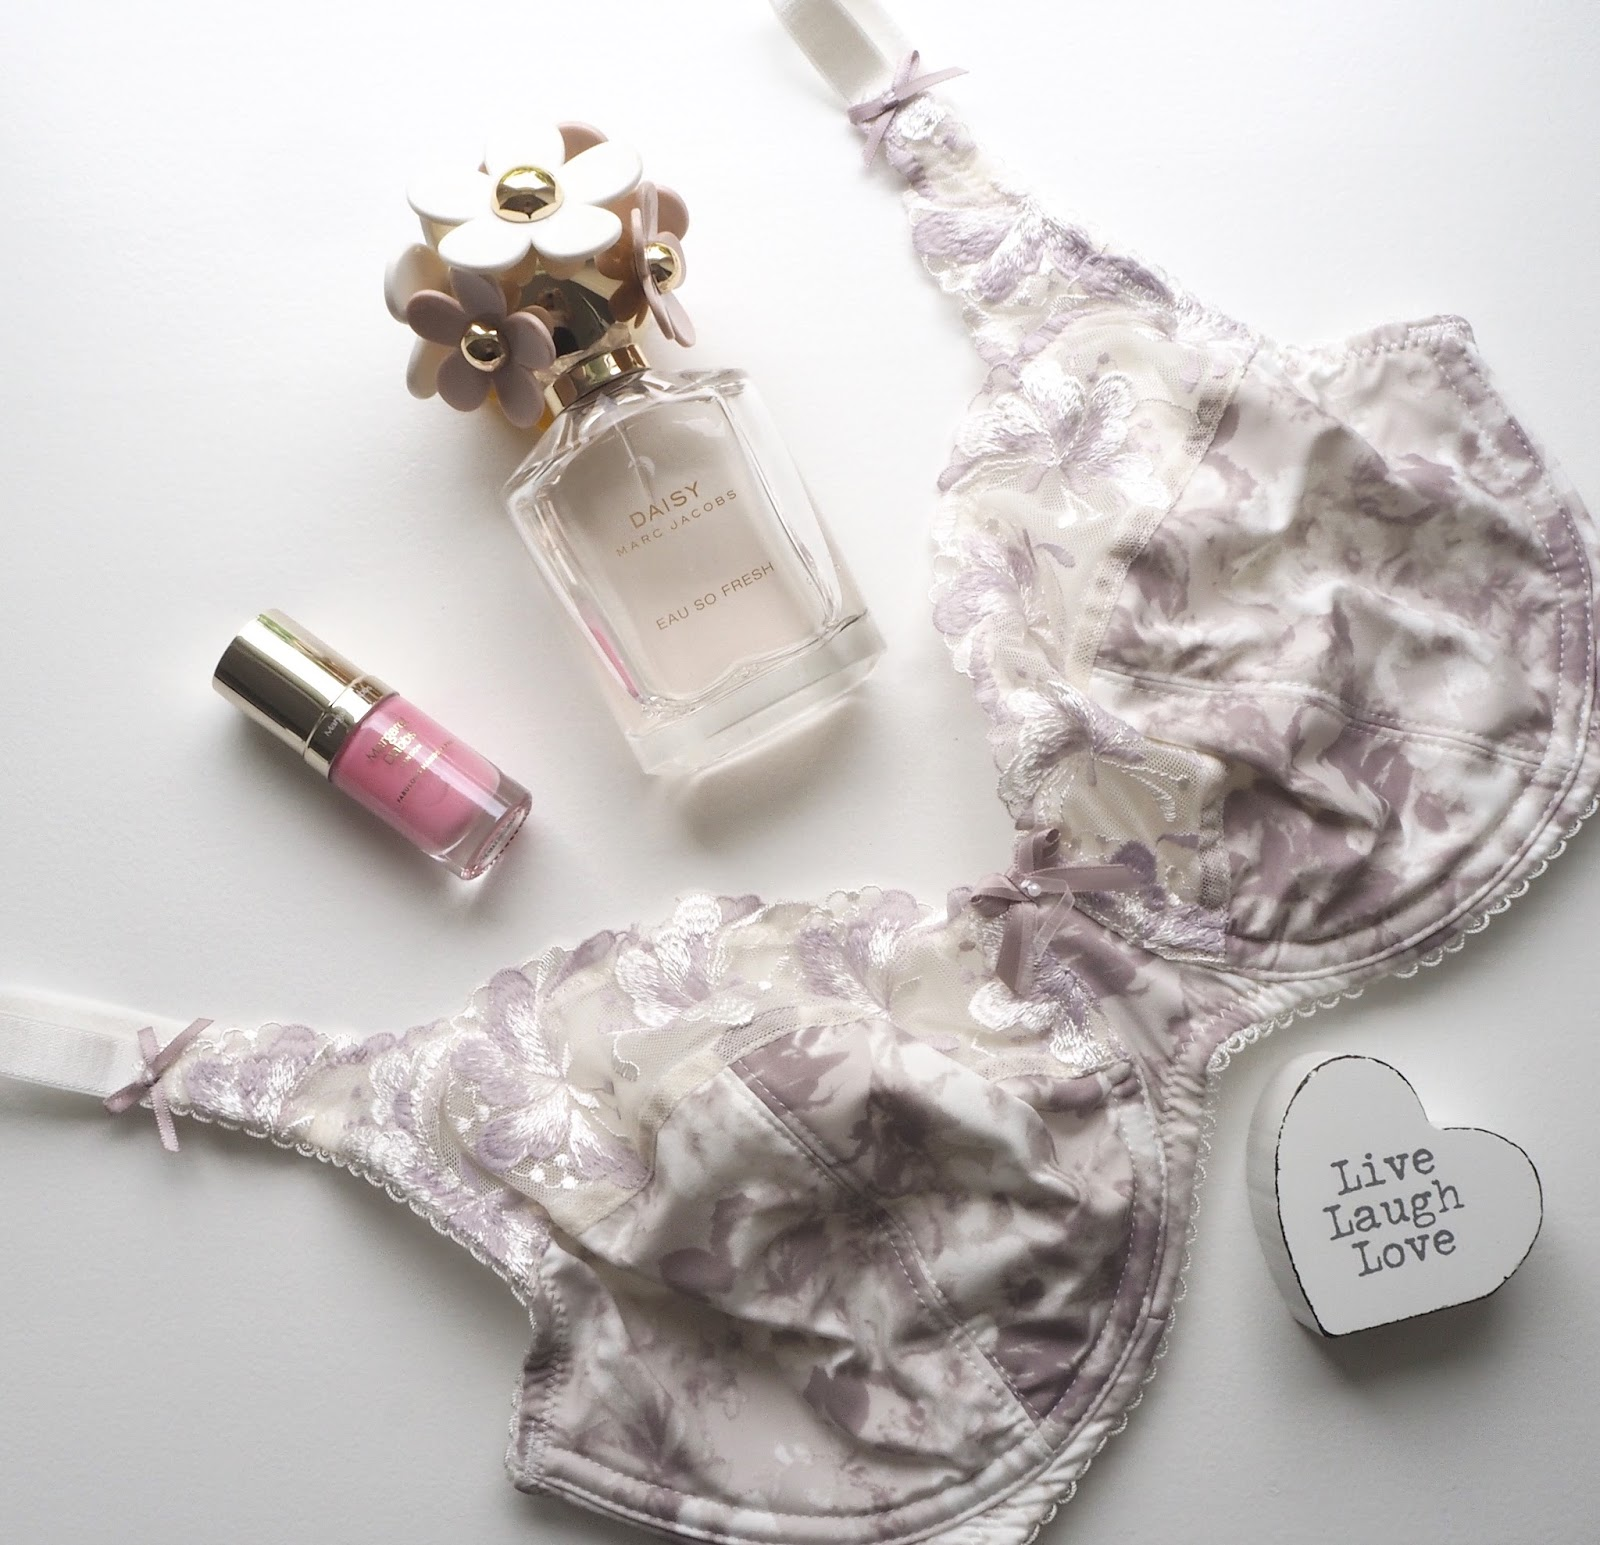 Bra Problems And Why It's Important To Get The Right Fit ...